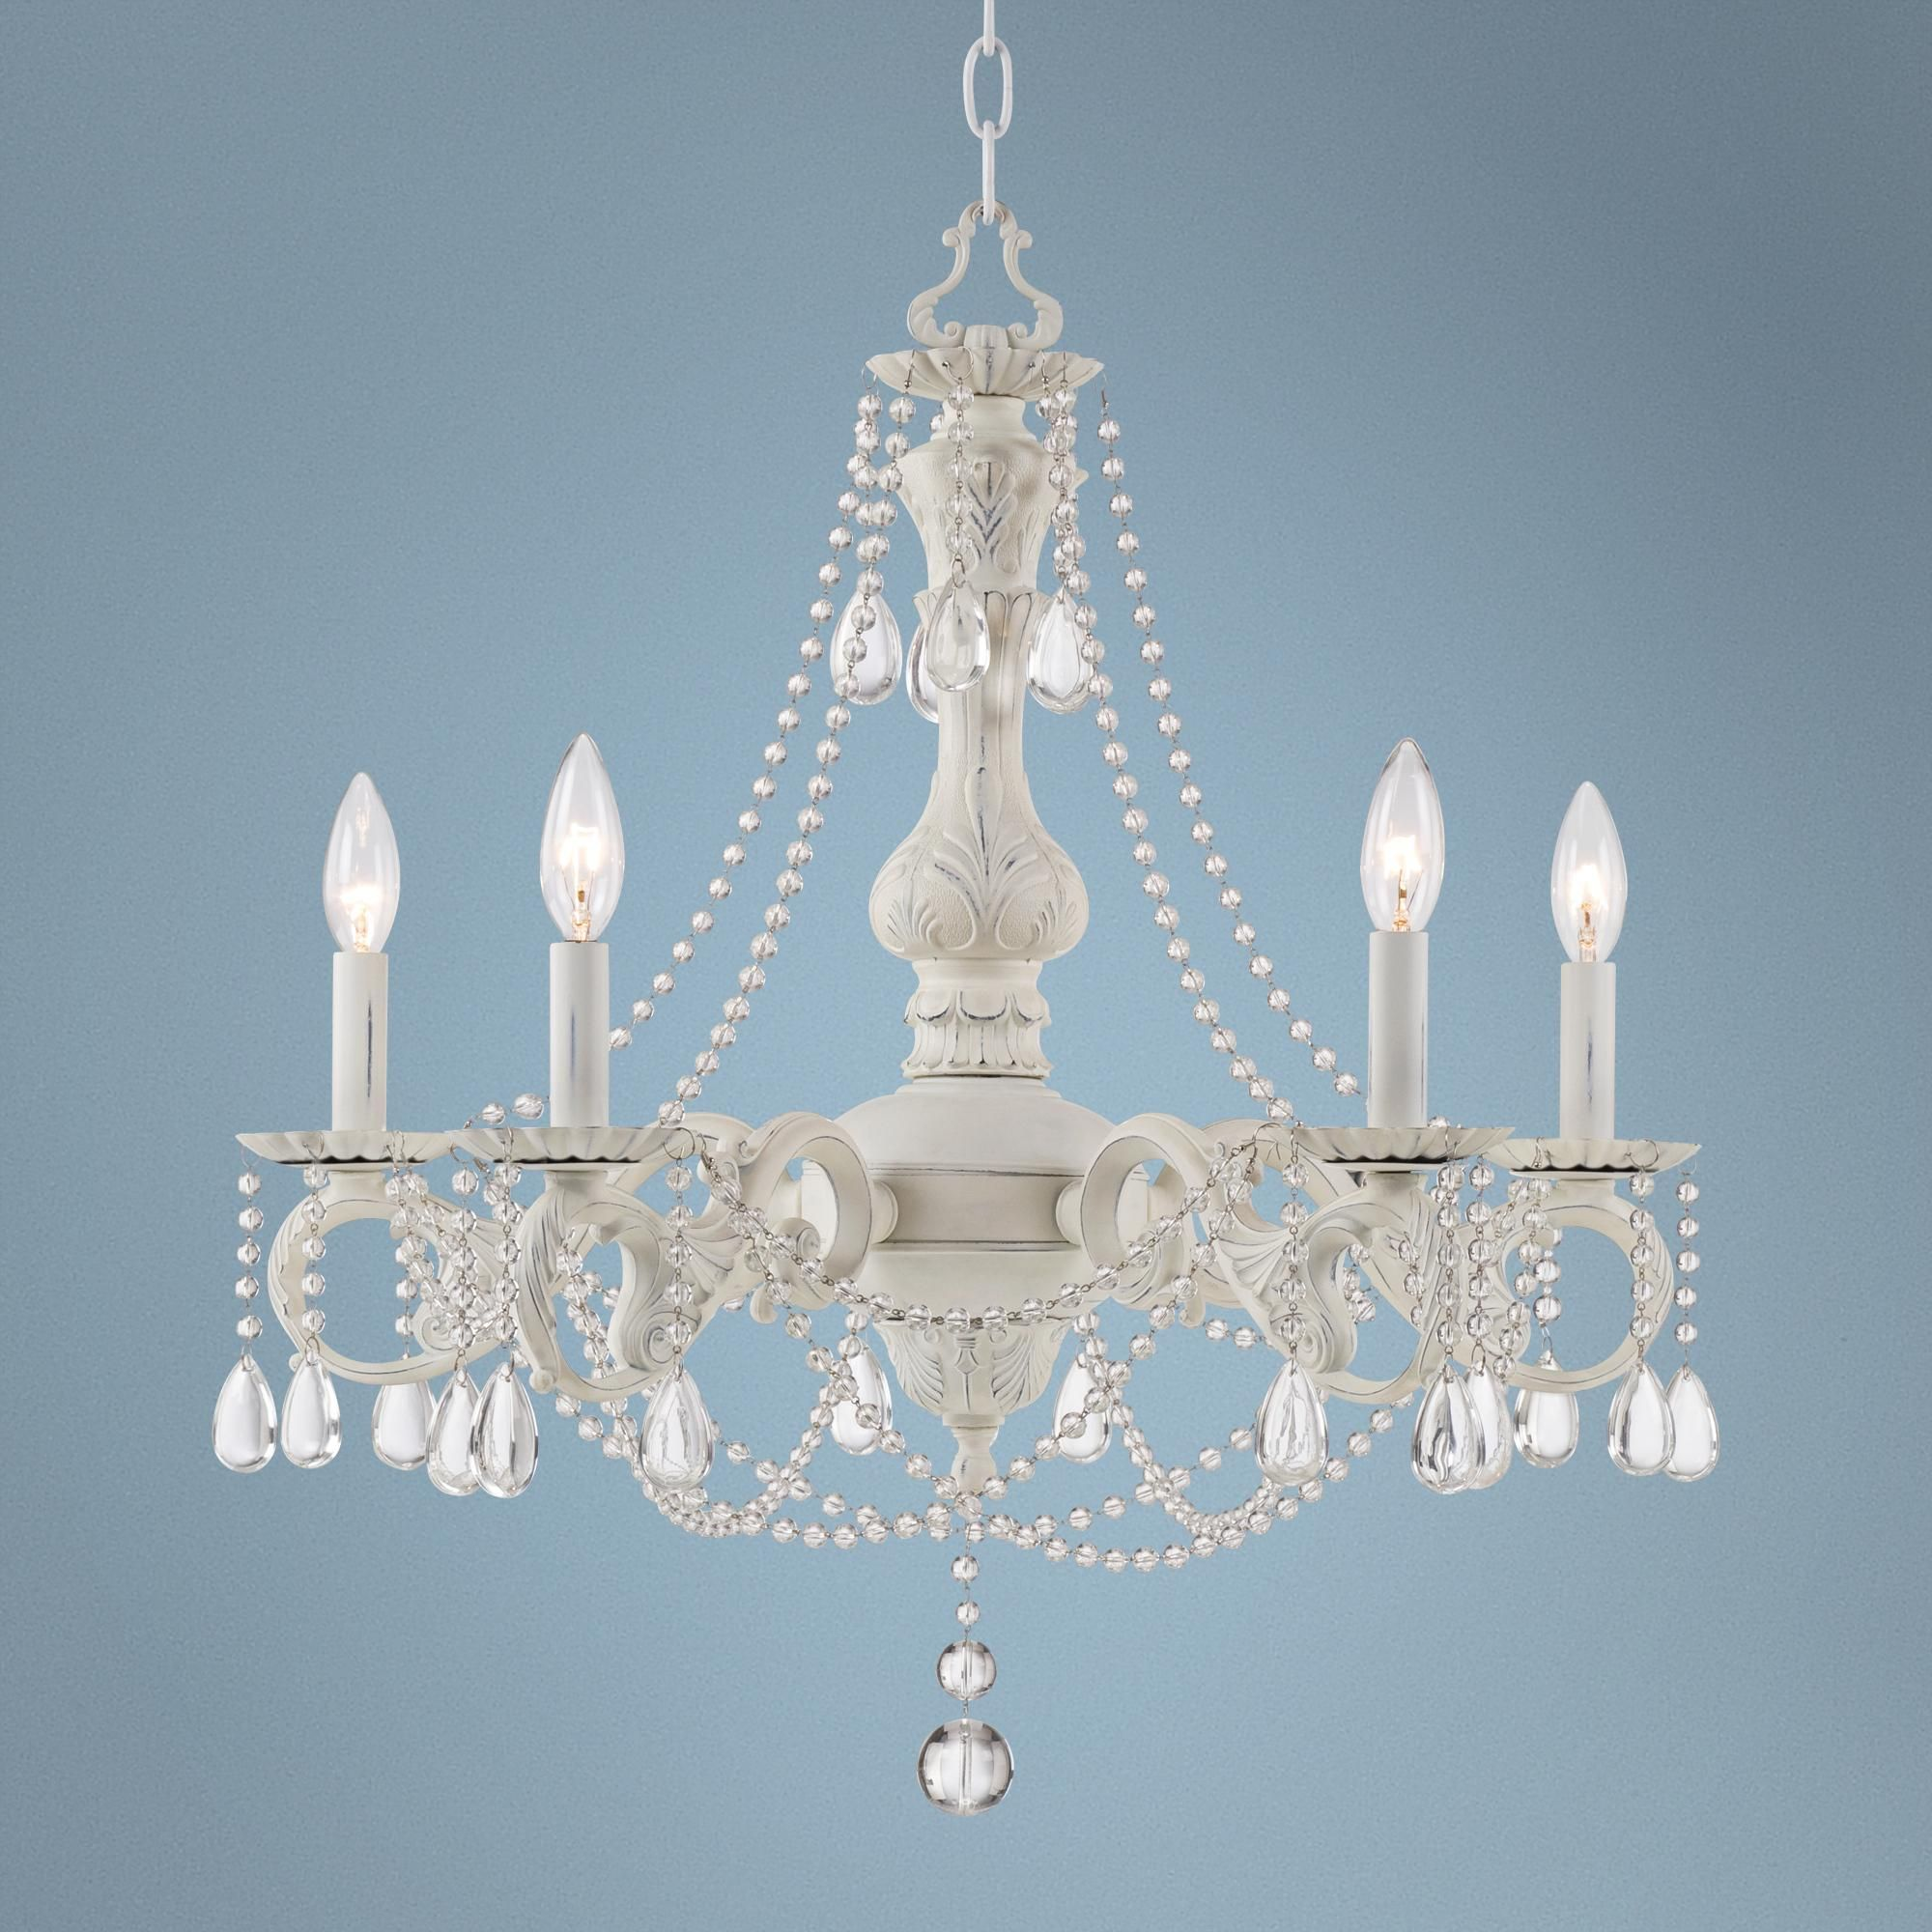 Kathy Ireland Stacey White 5 Light Beaded Crystal Chandelier